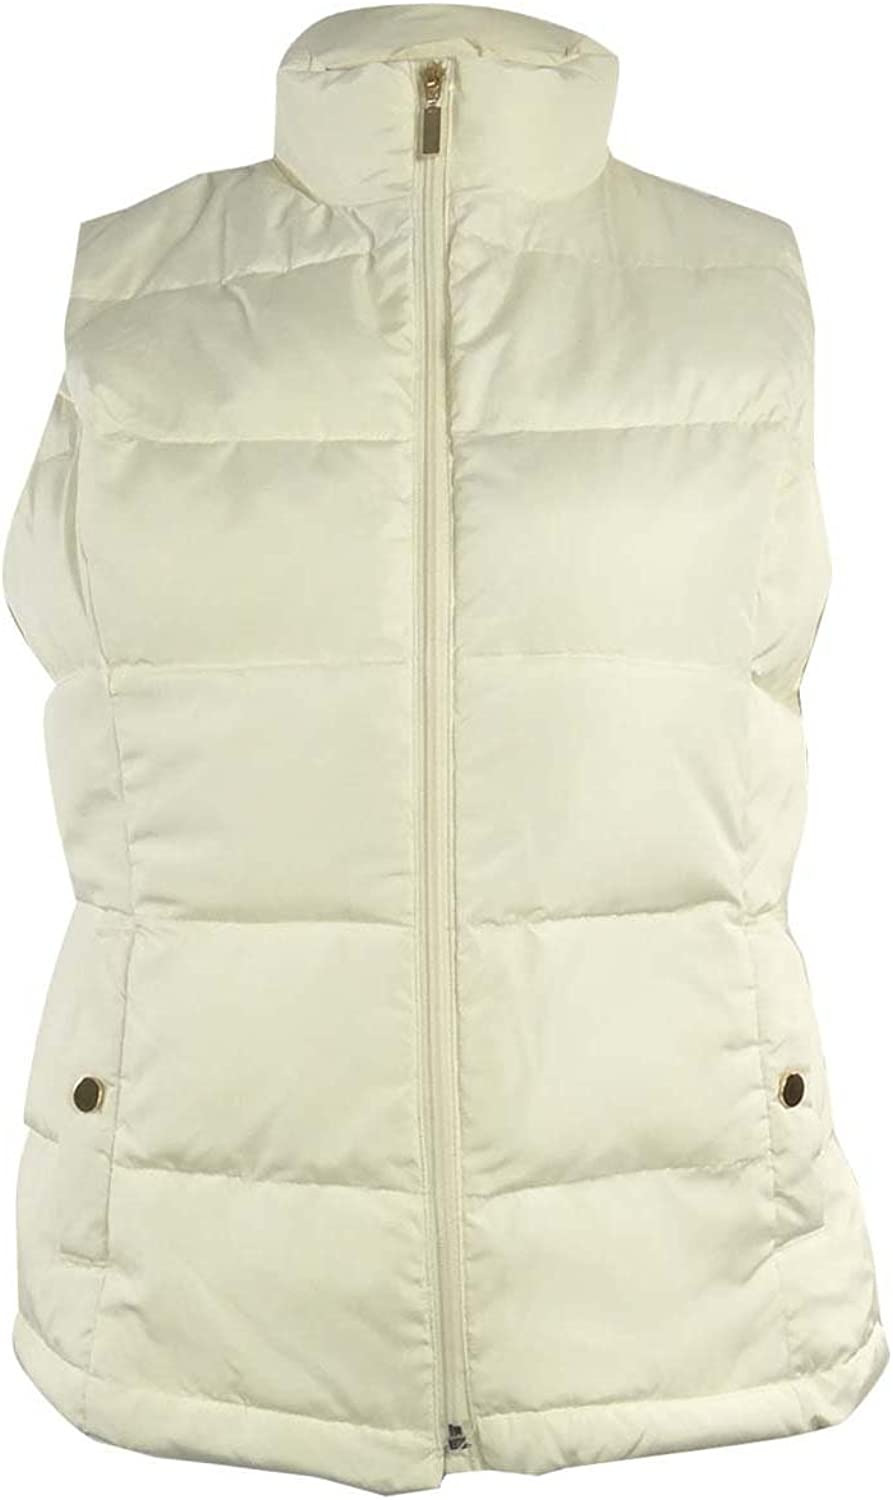 Charter Club Women's Solid Quilted Jacket Vest